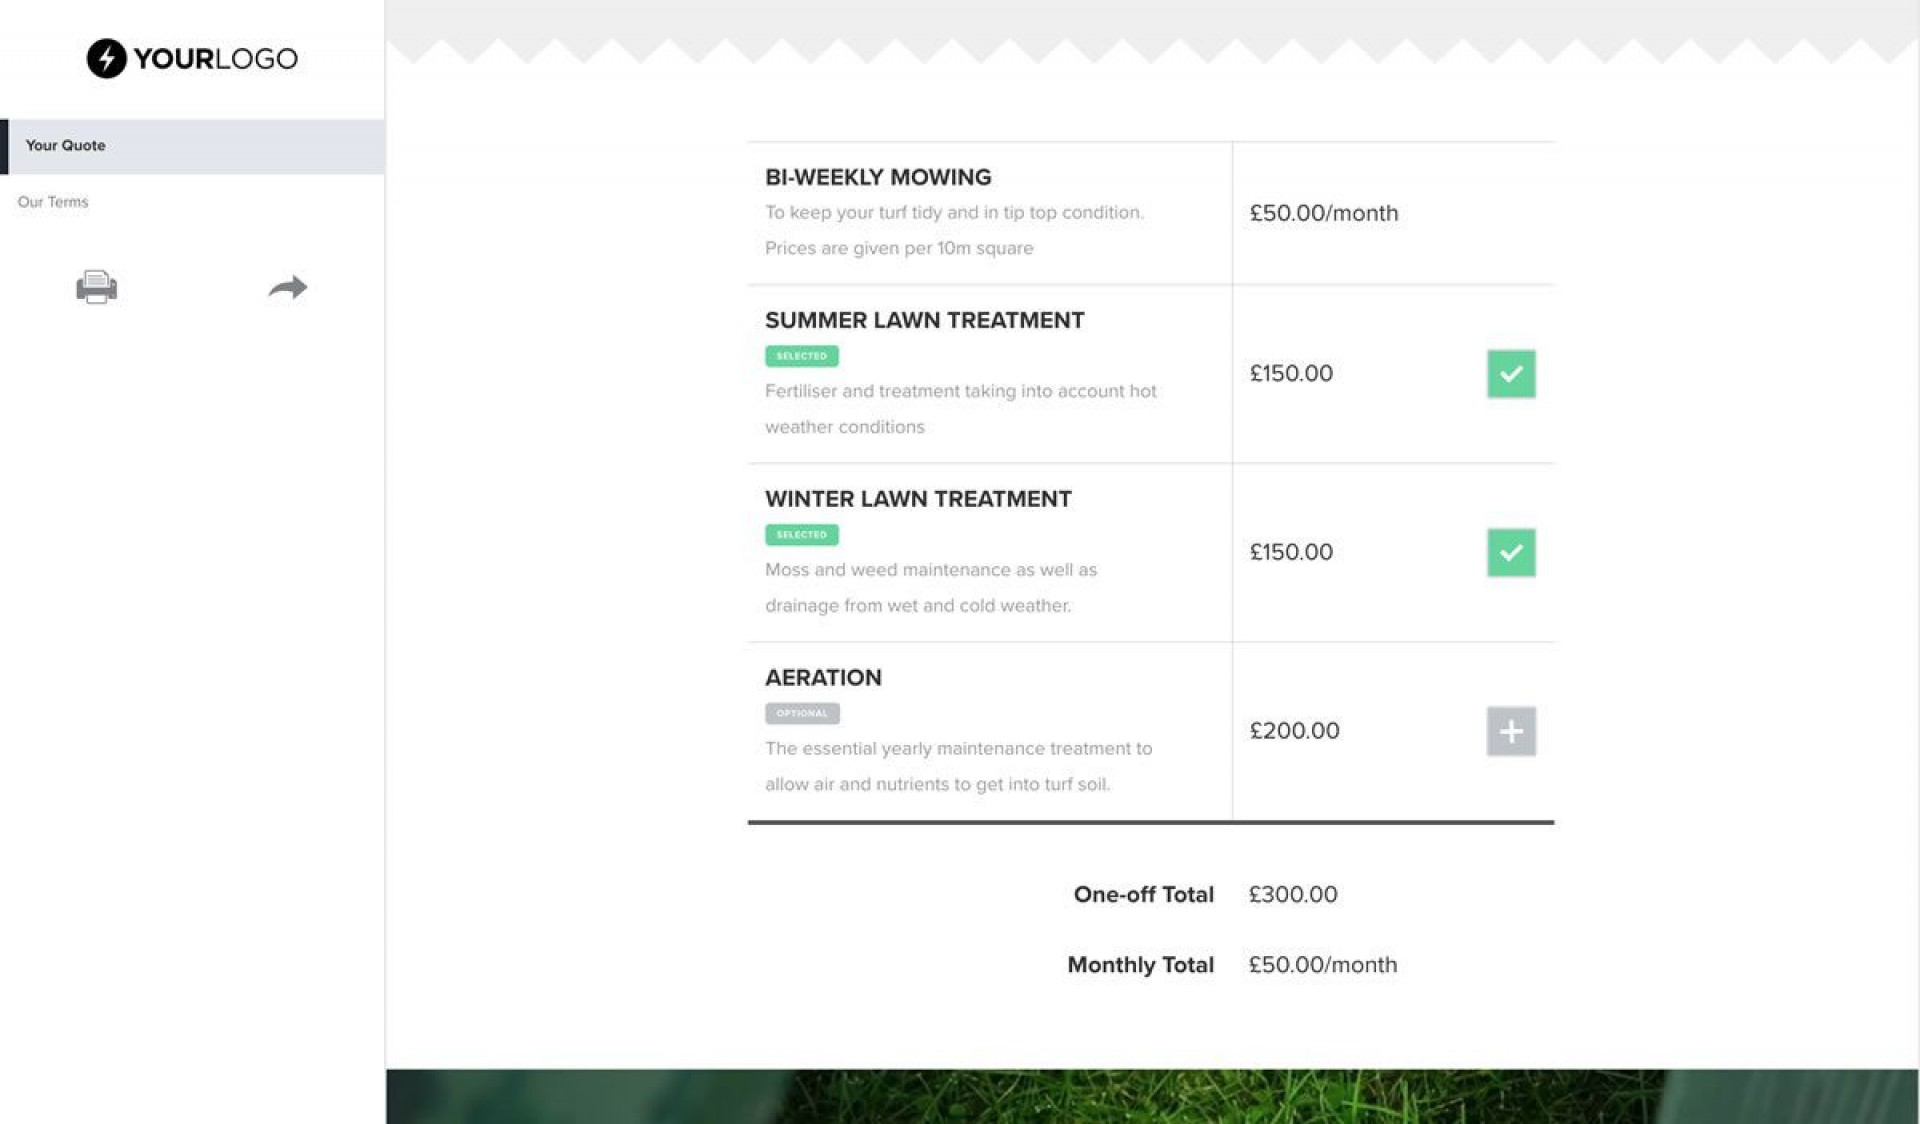 001 Incredible Commercial Lawn Care Bid Template Concept 1920